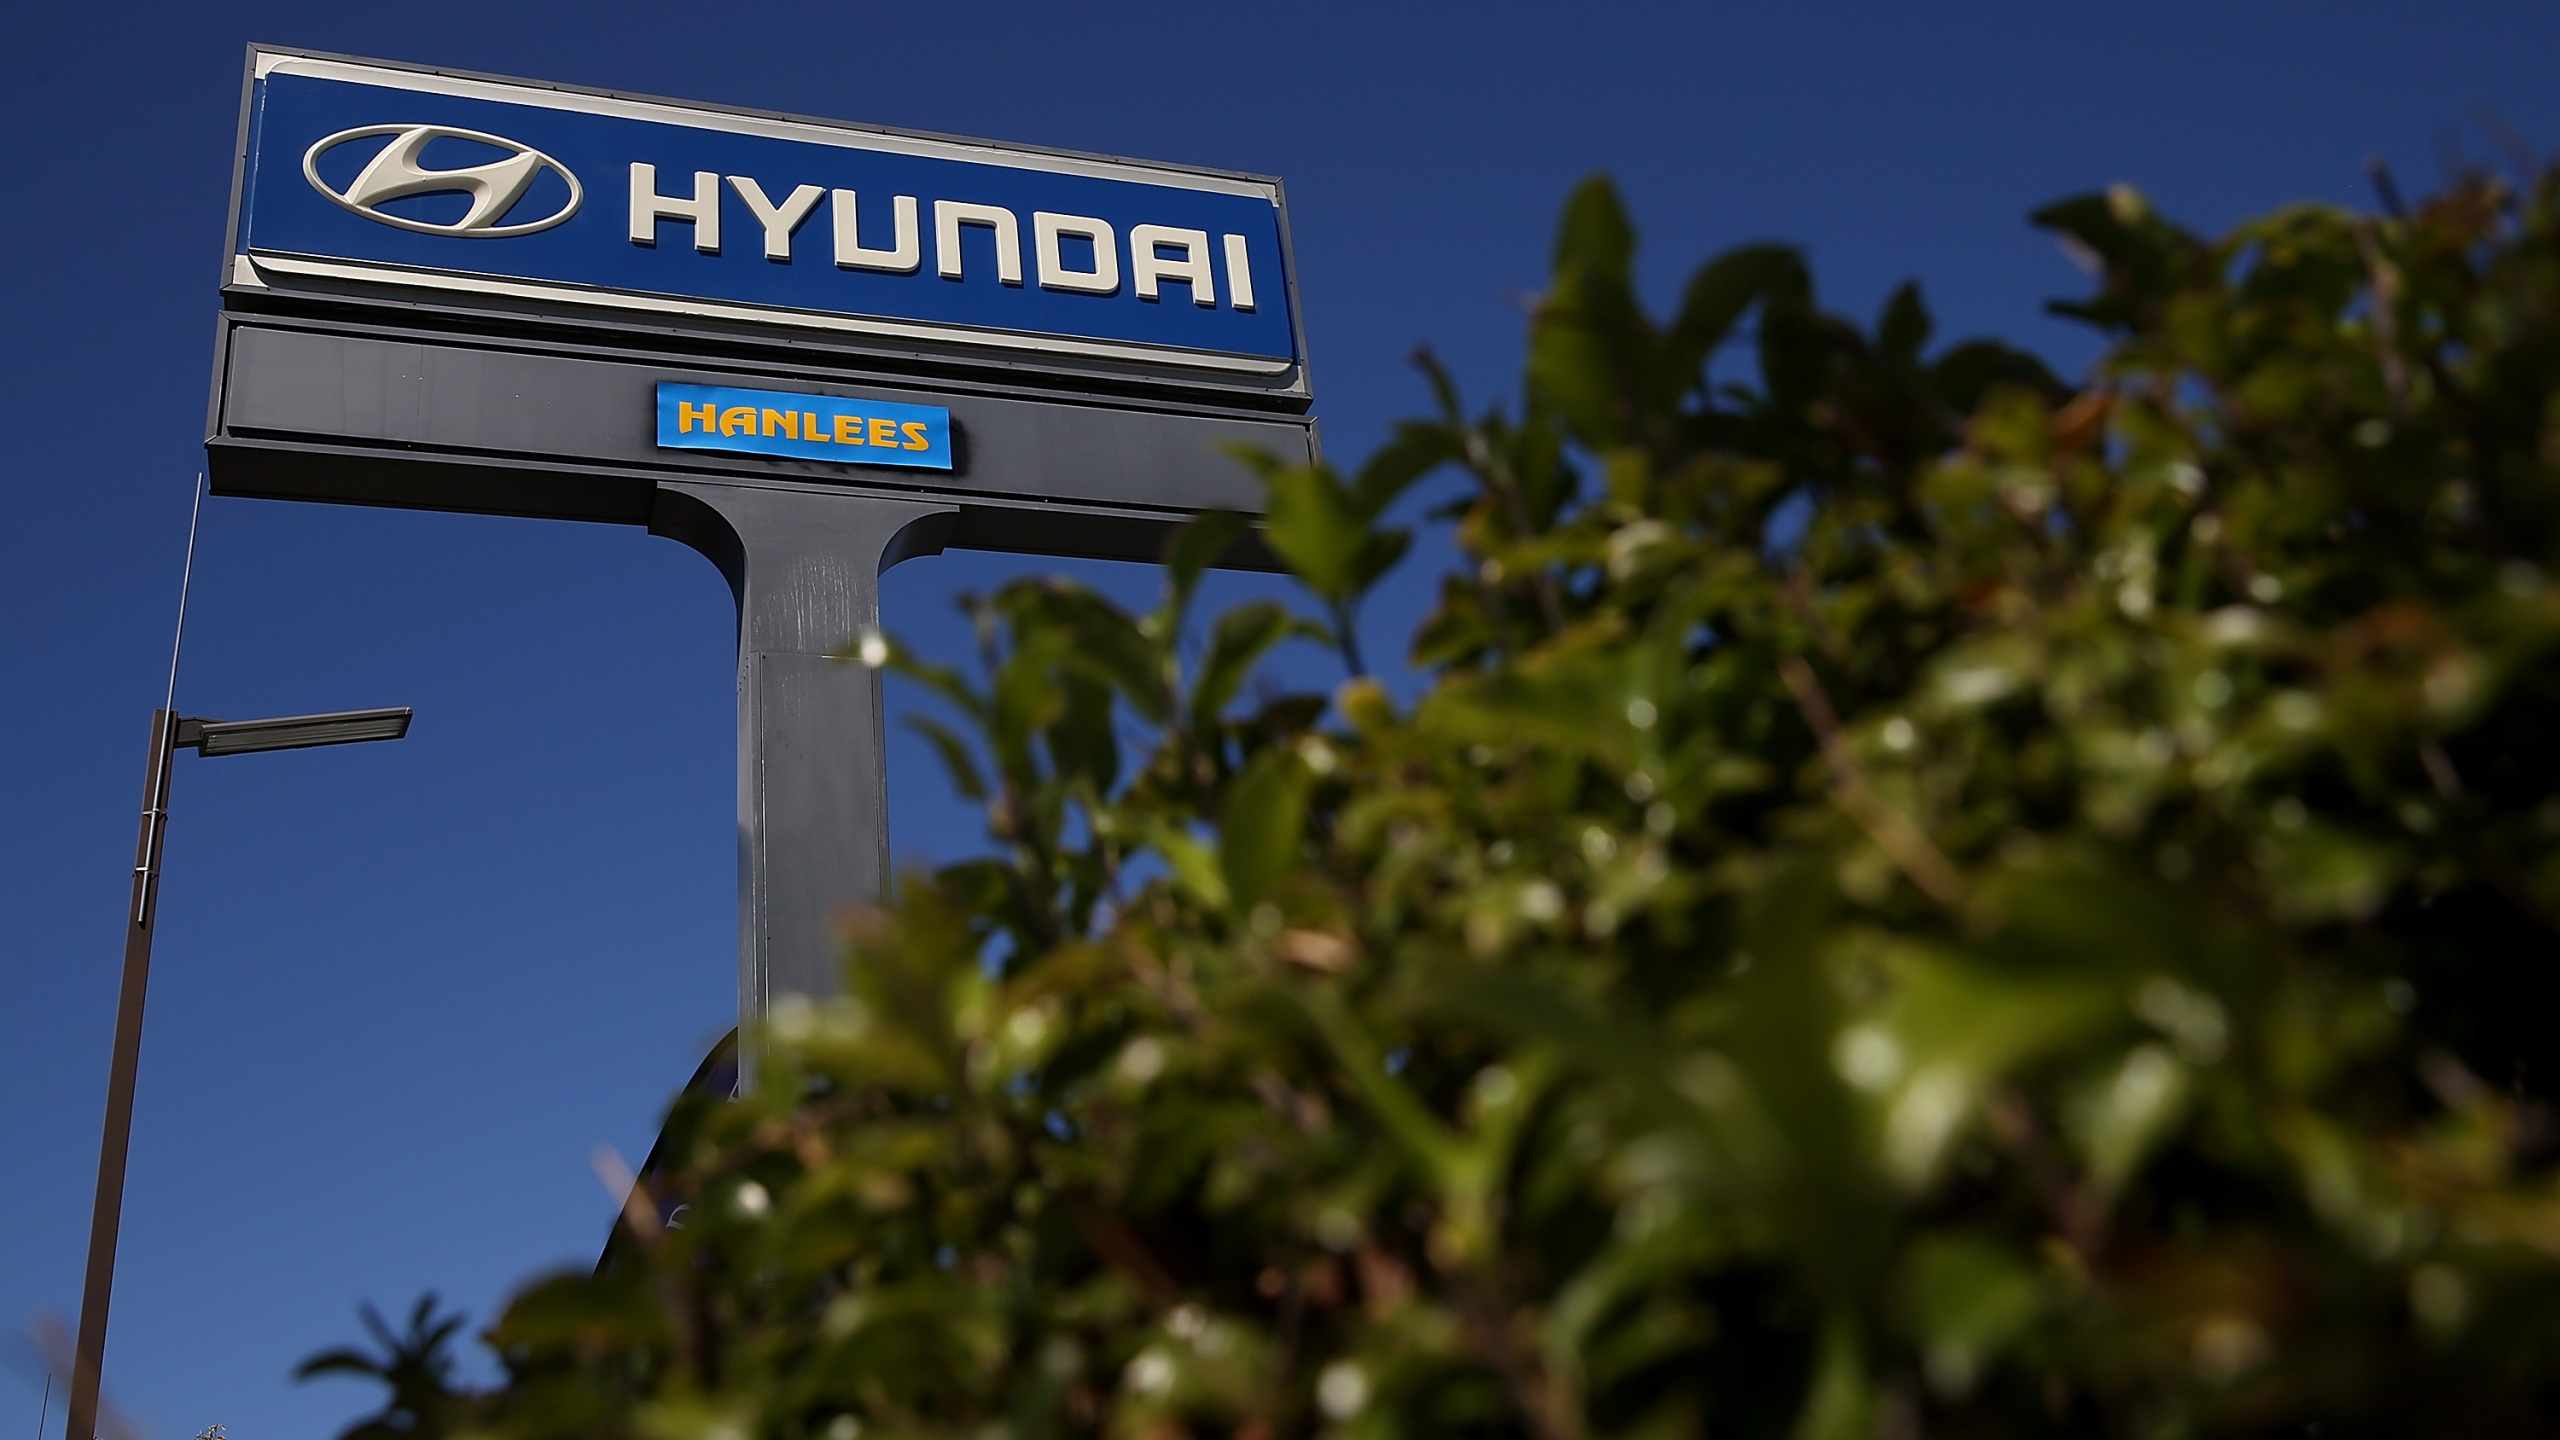 A sign stands in front of Hanlees Hyundai on May 27, 2014 in Richmond, California. (Justin Sullivan/Getty Images)